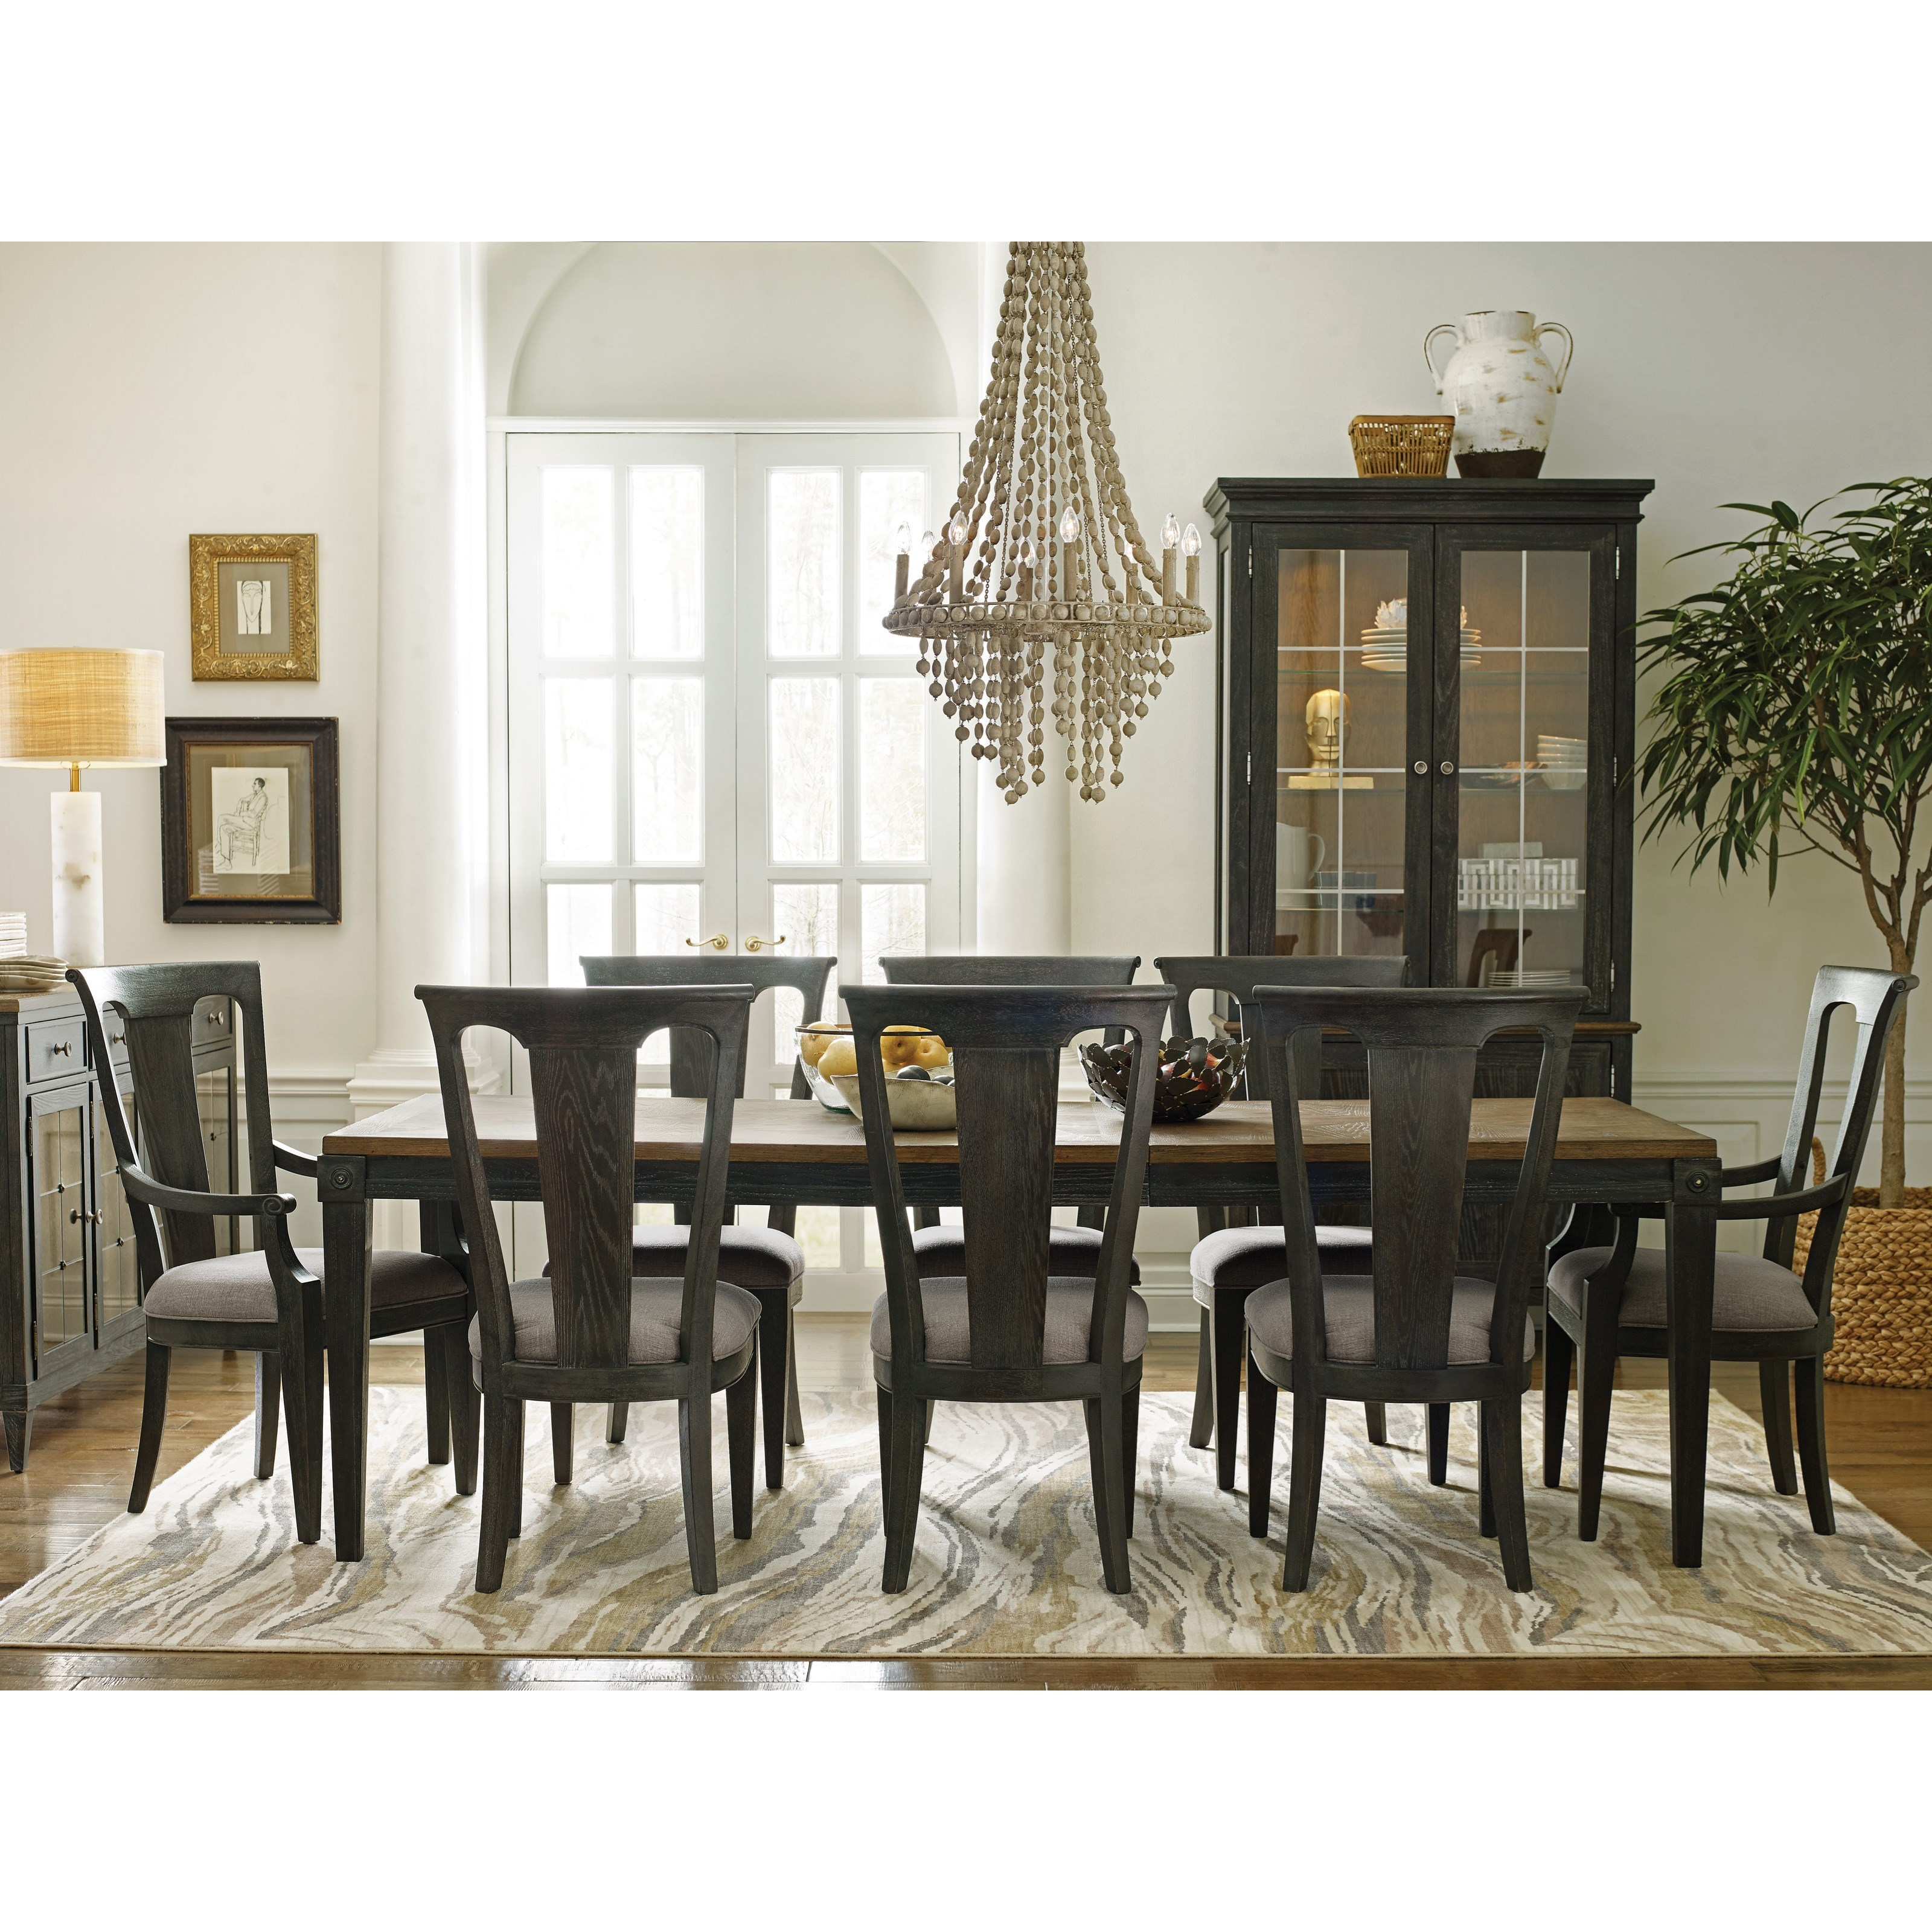 Ardennes Dining Table and Chair Set  by American Drew at Alison Craig Home Furnishings